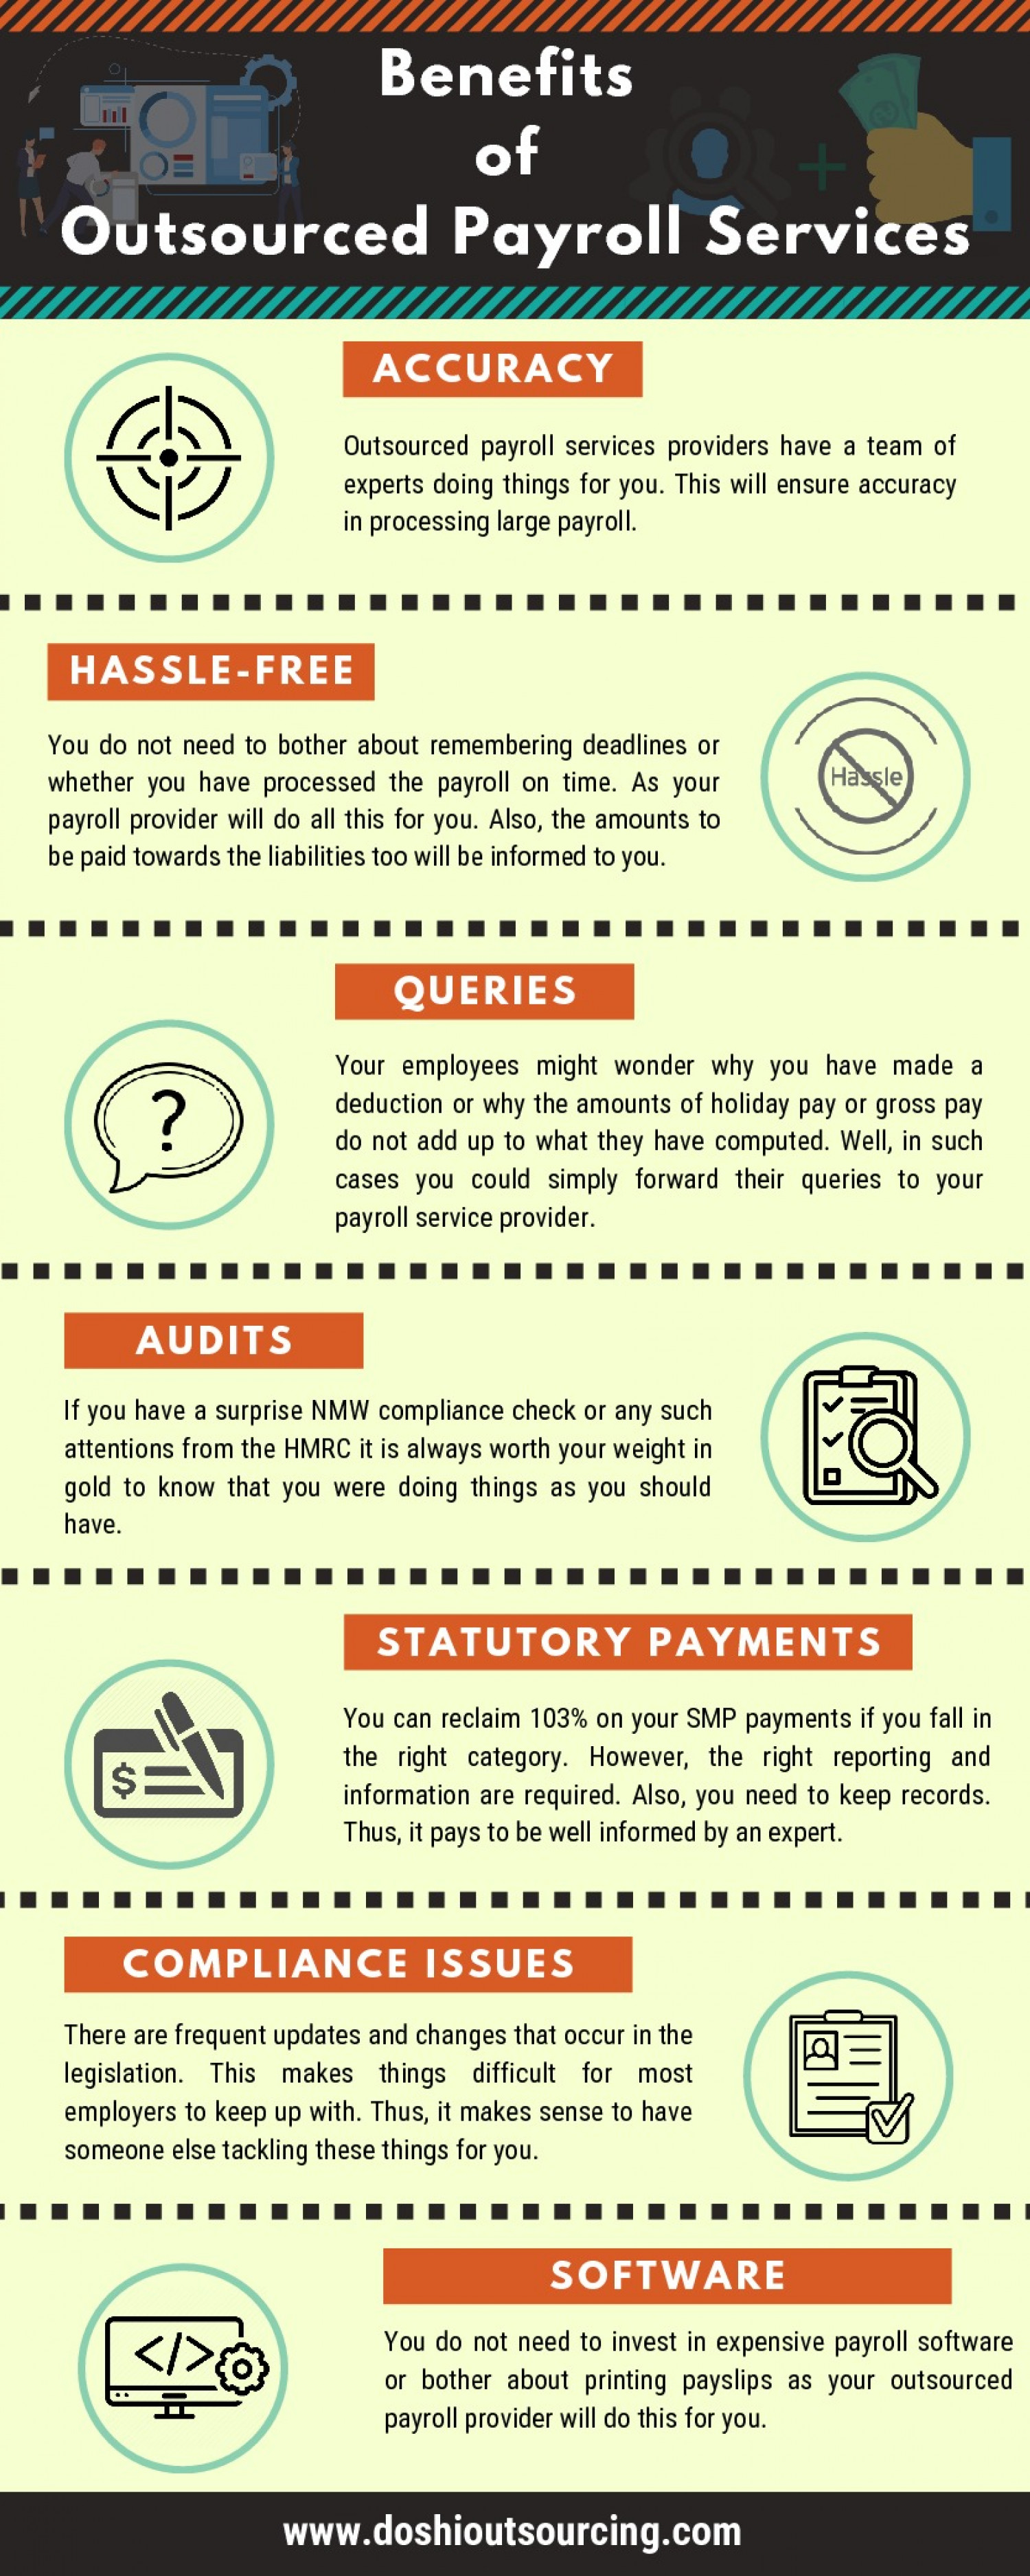 Benefits of Outsourced Payroll Services Infographic